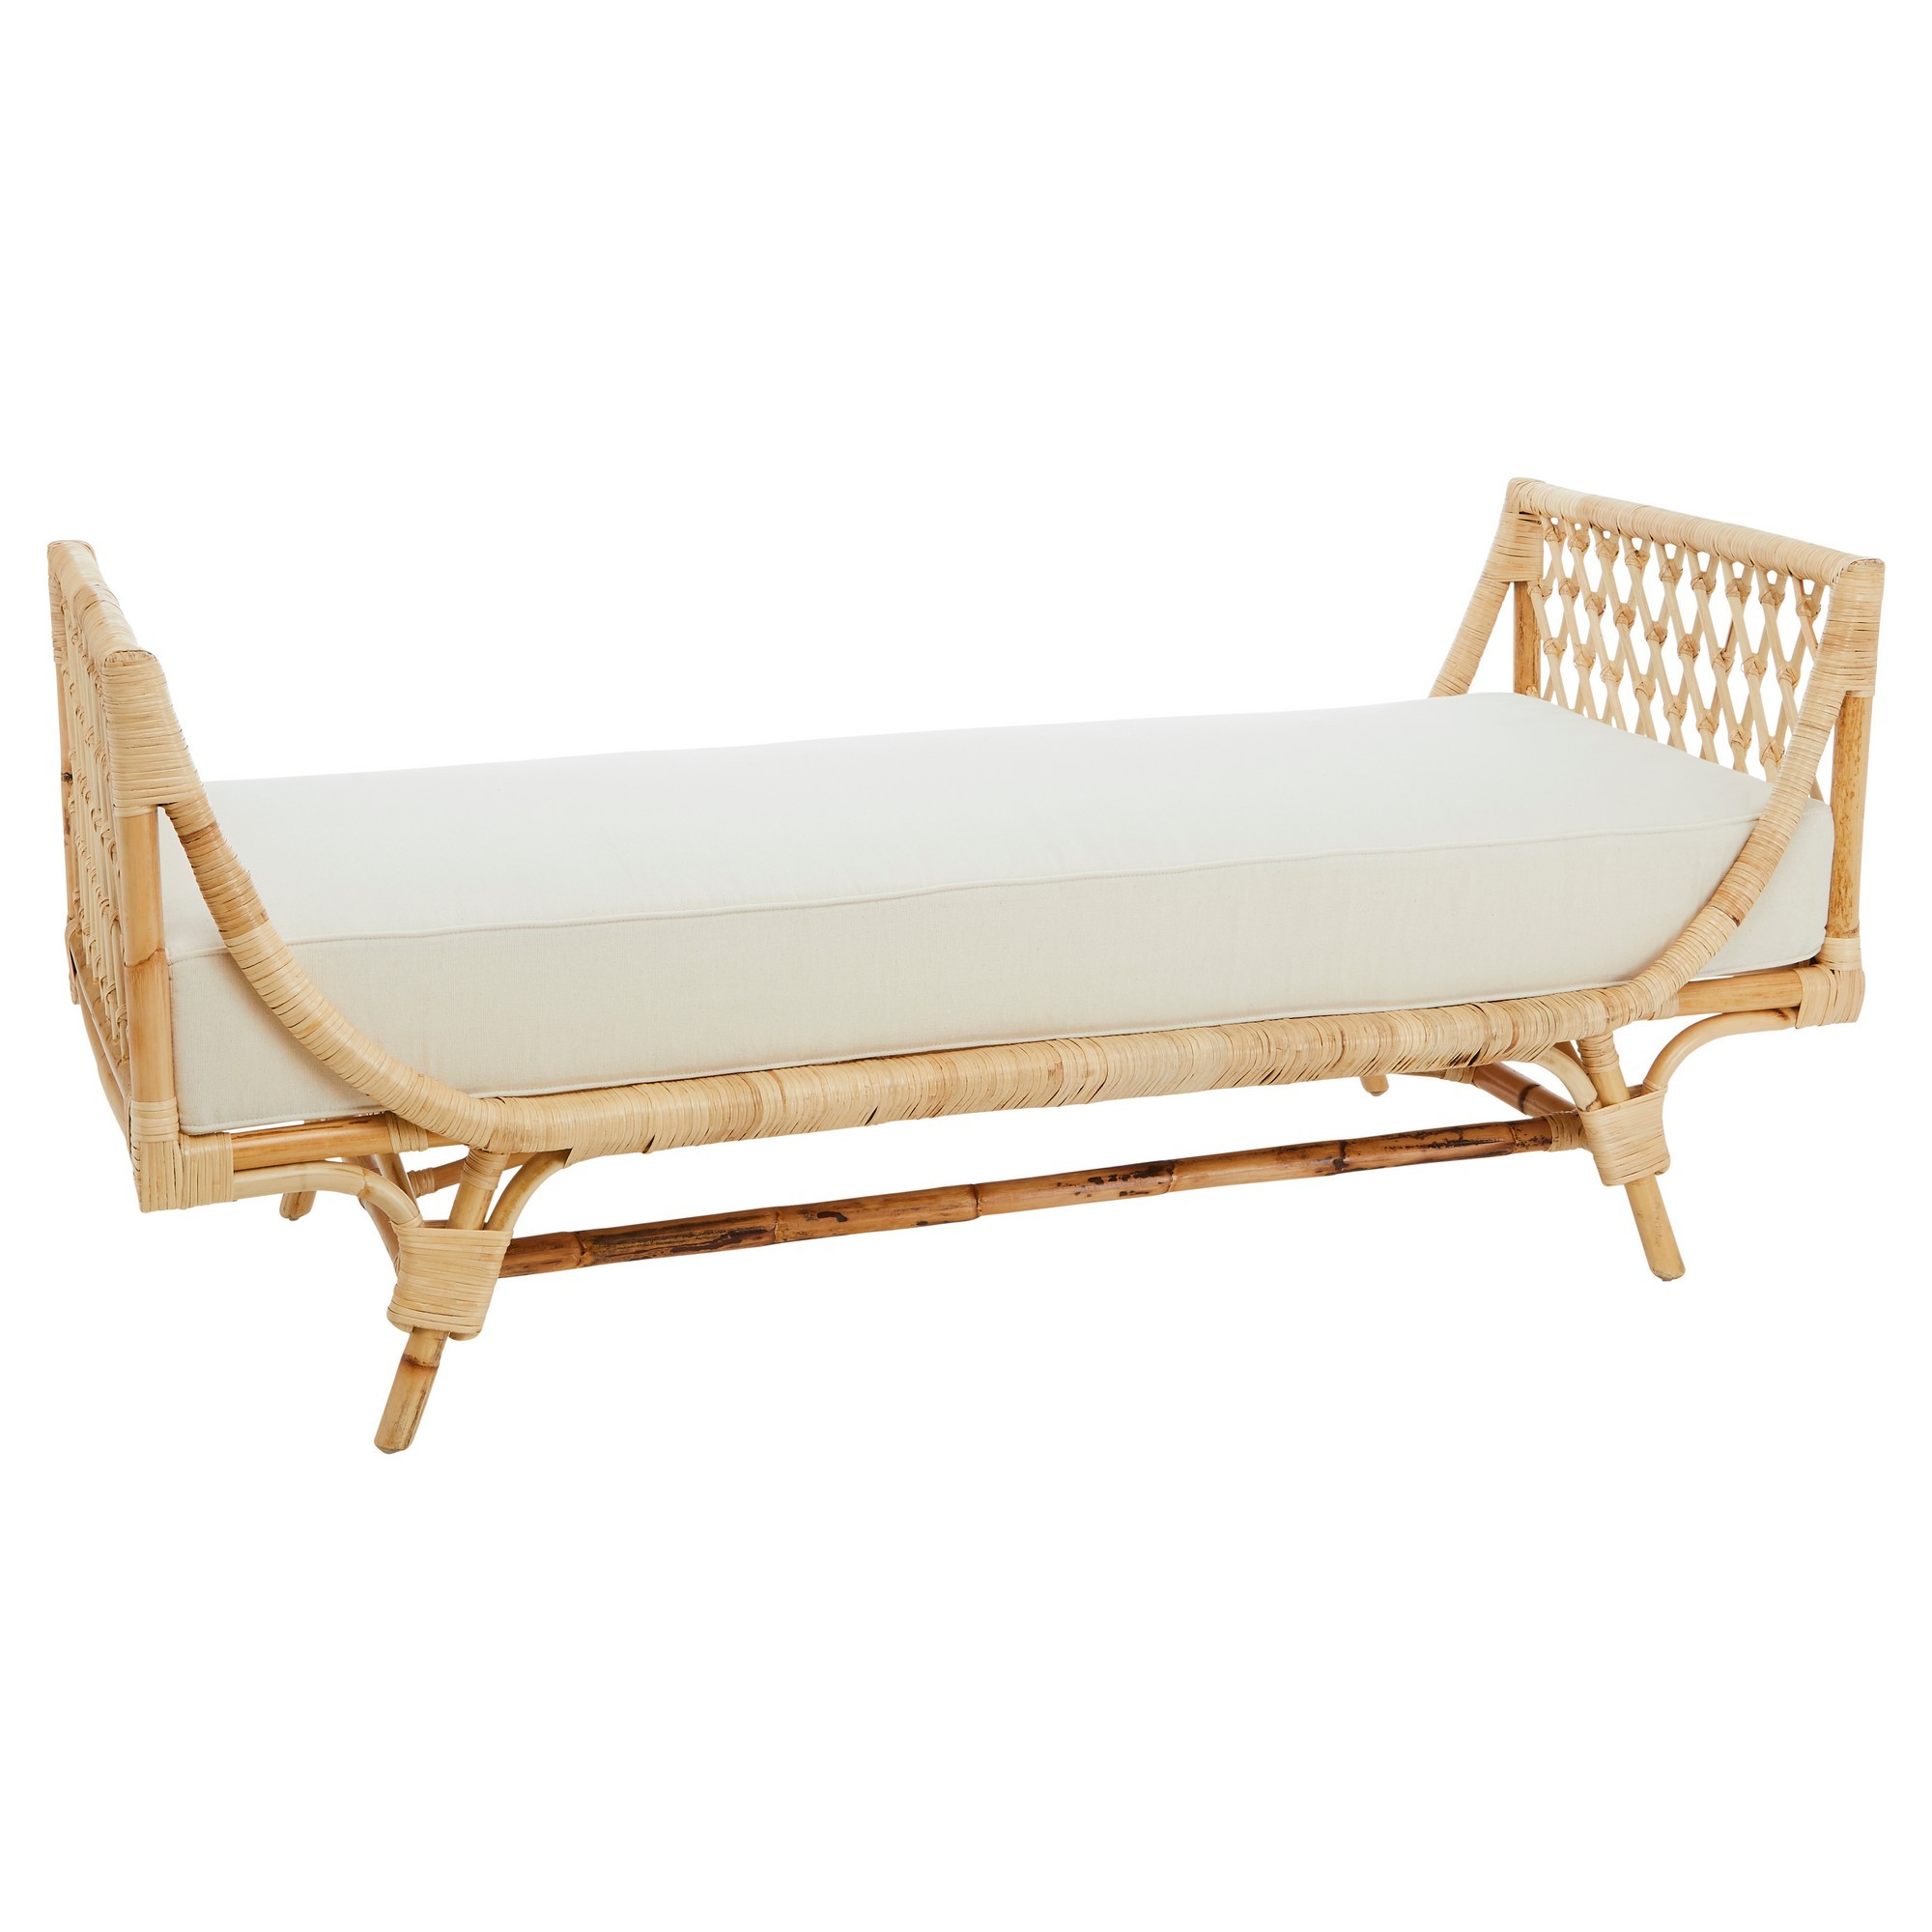 Ravello Rattan Sofa Bed / Bench, Natural